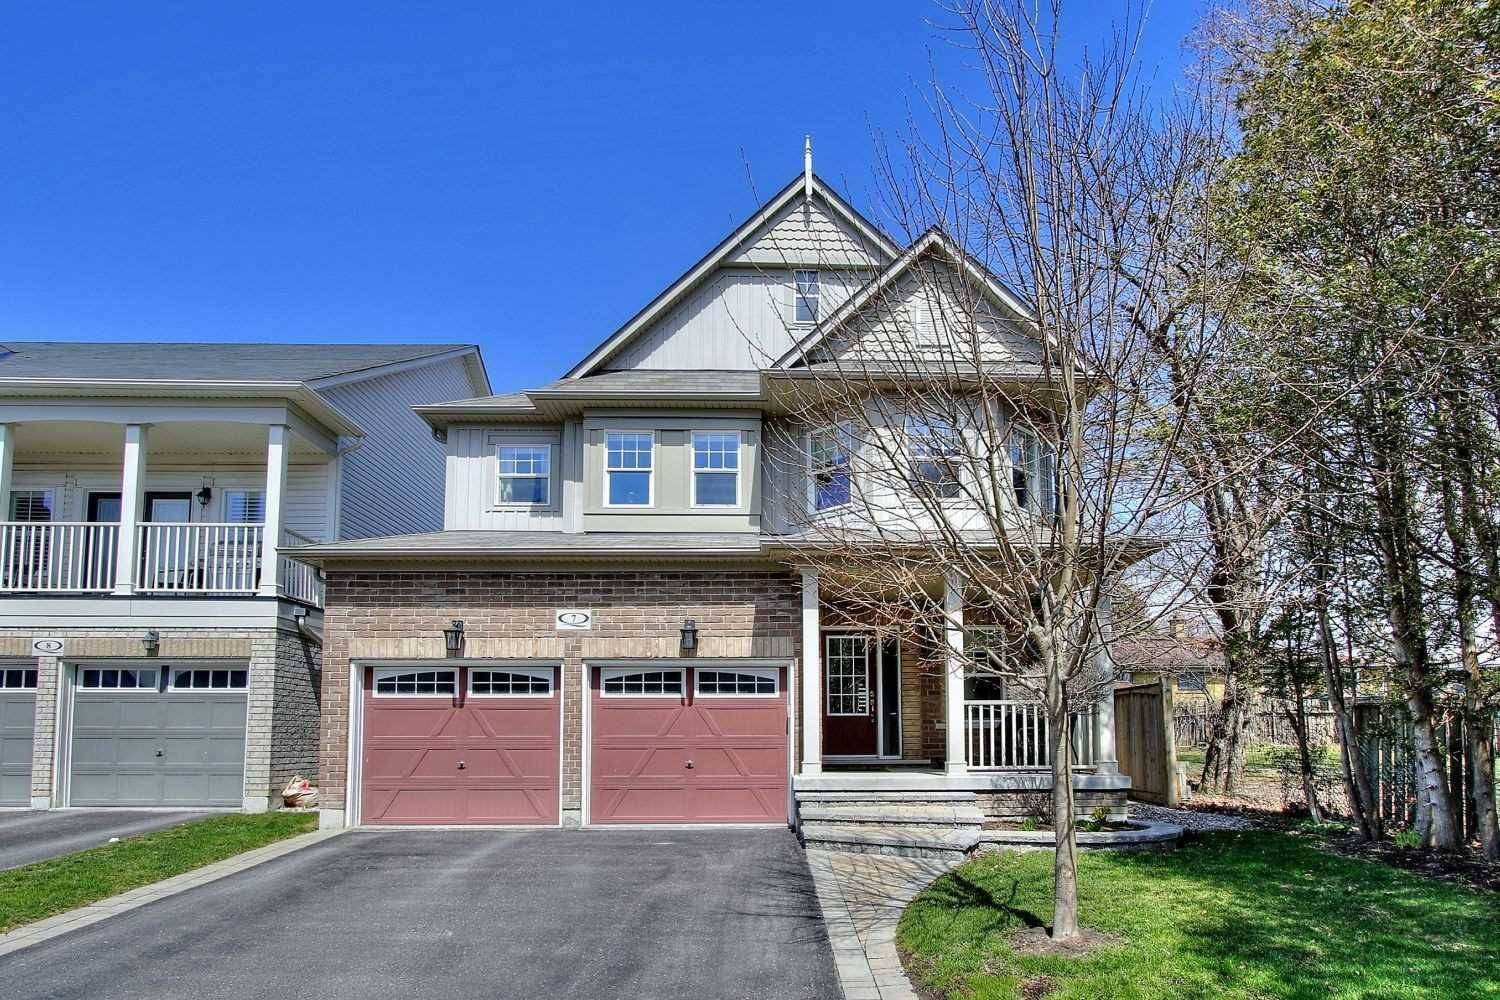 Buliding: 1290 Old Orchard Avenue, Pickering, ON